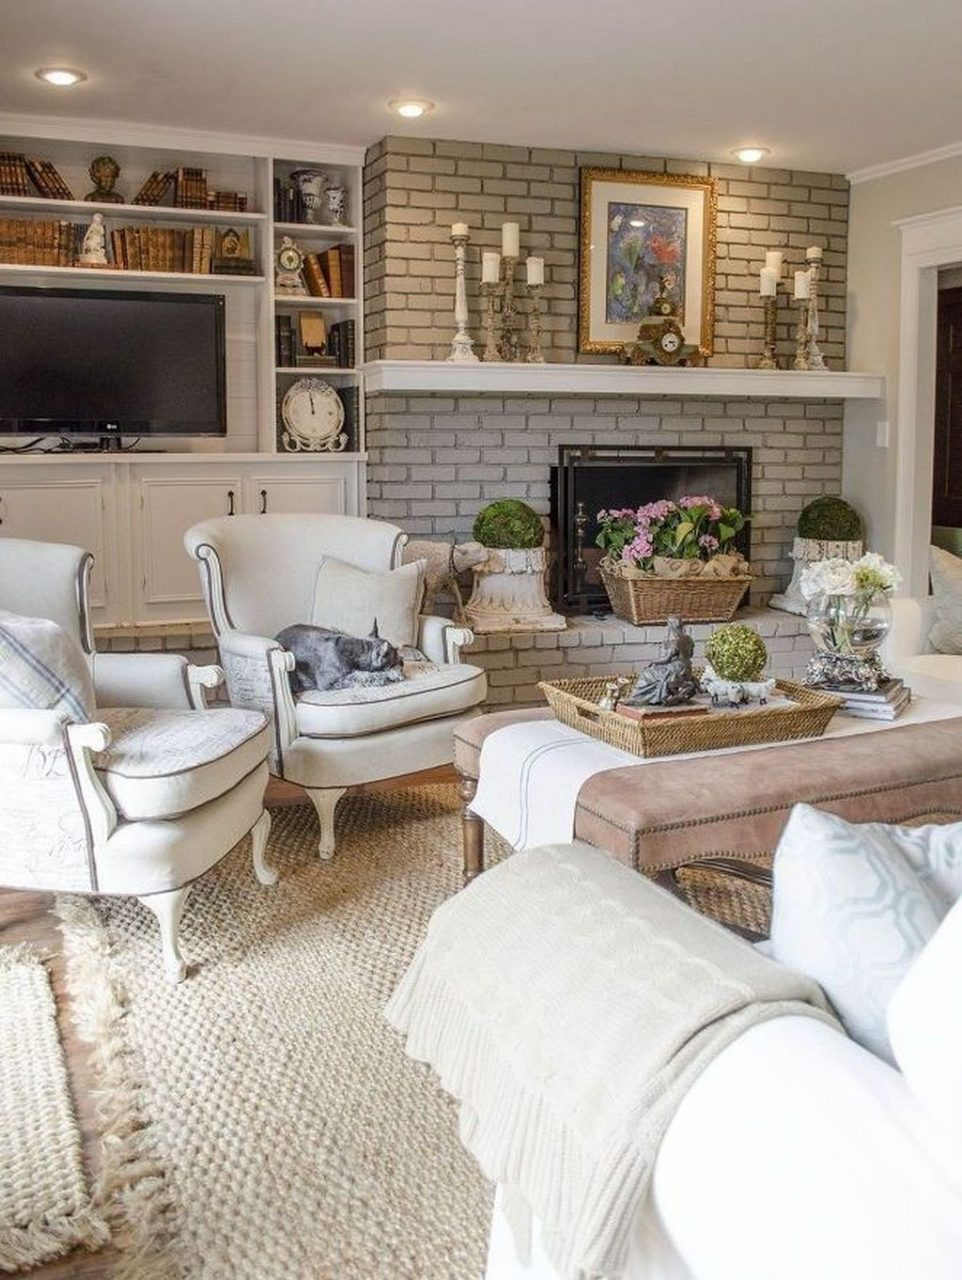 49 Cozy French Country Living Room Decor Ideas French Country